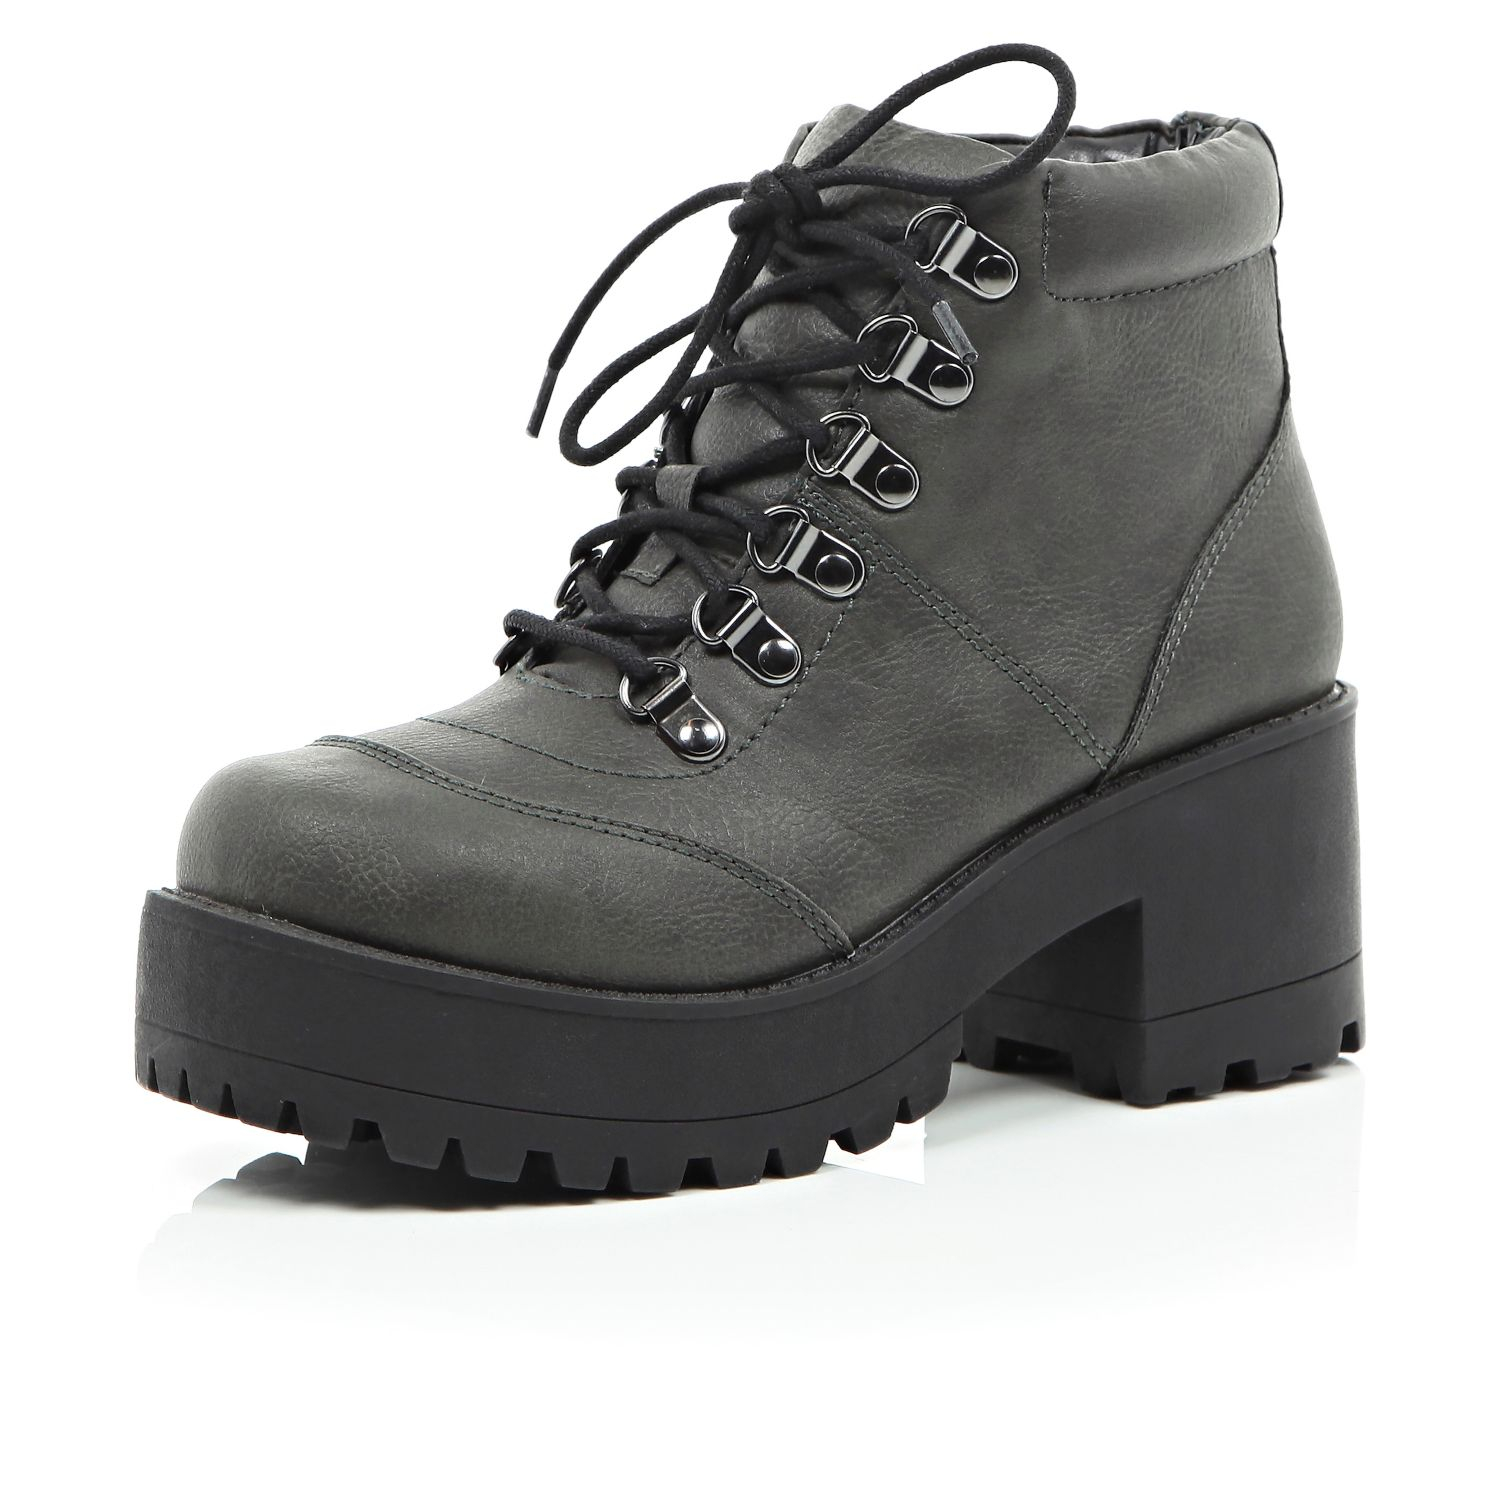 River Island Grey Cleated Sole Chunky Hiker Boots in Grey